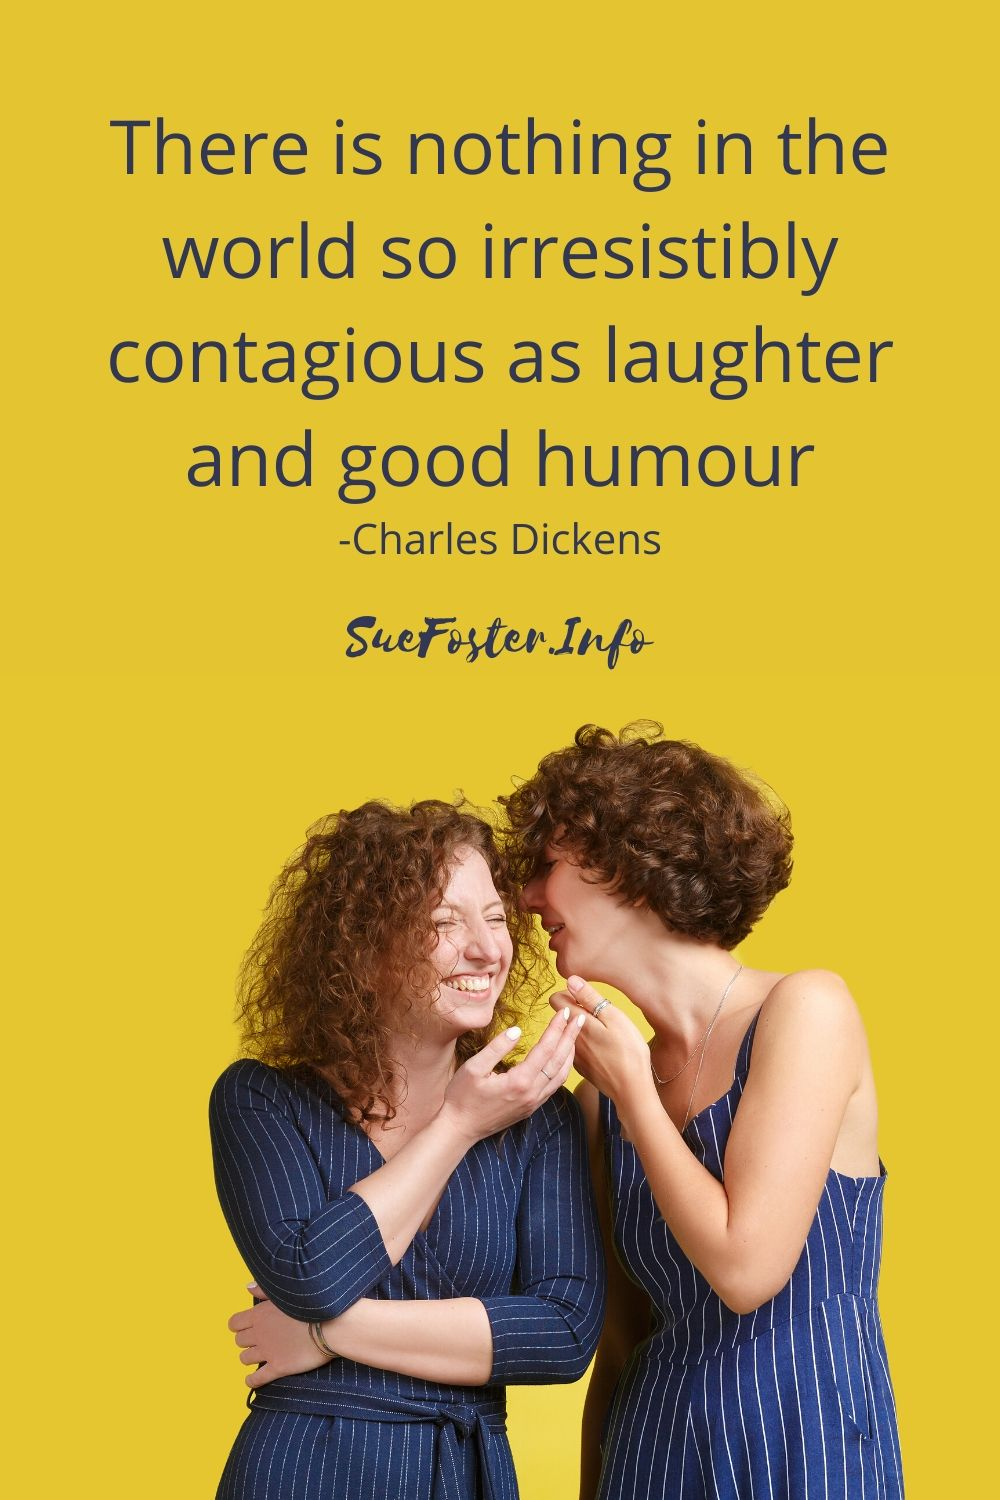 There is nothing in the world so irresistibly contagious as laughter and good humour.